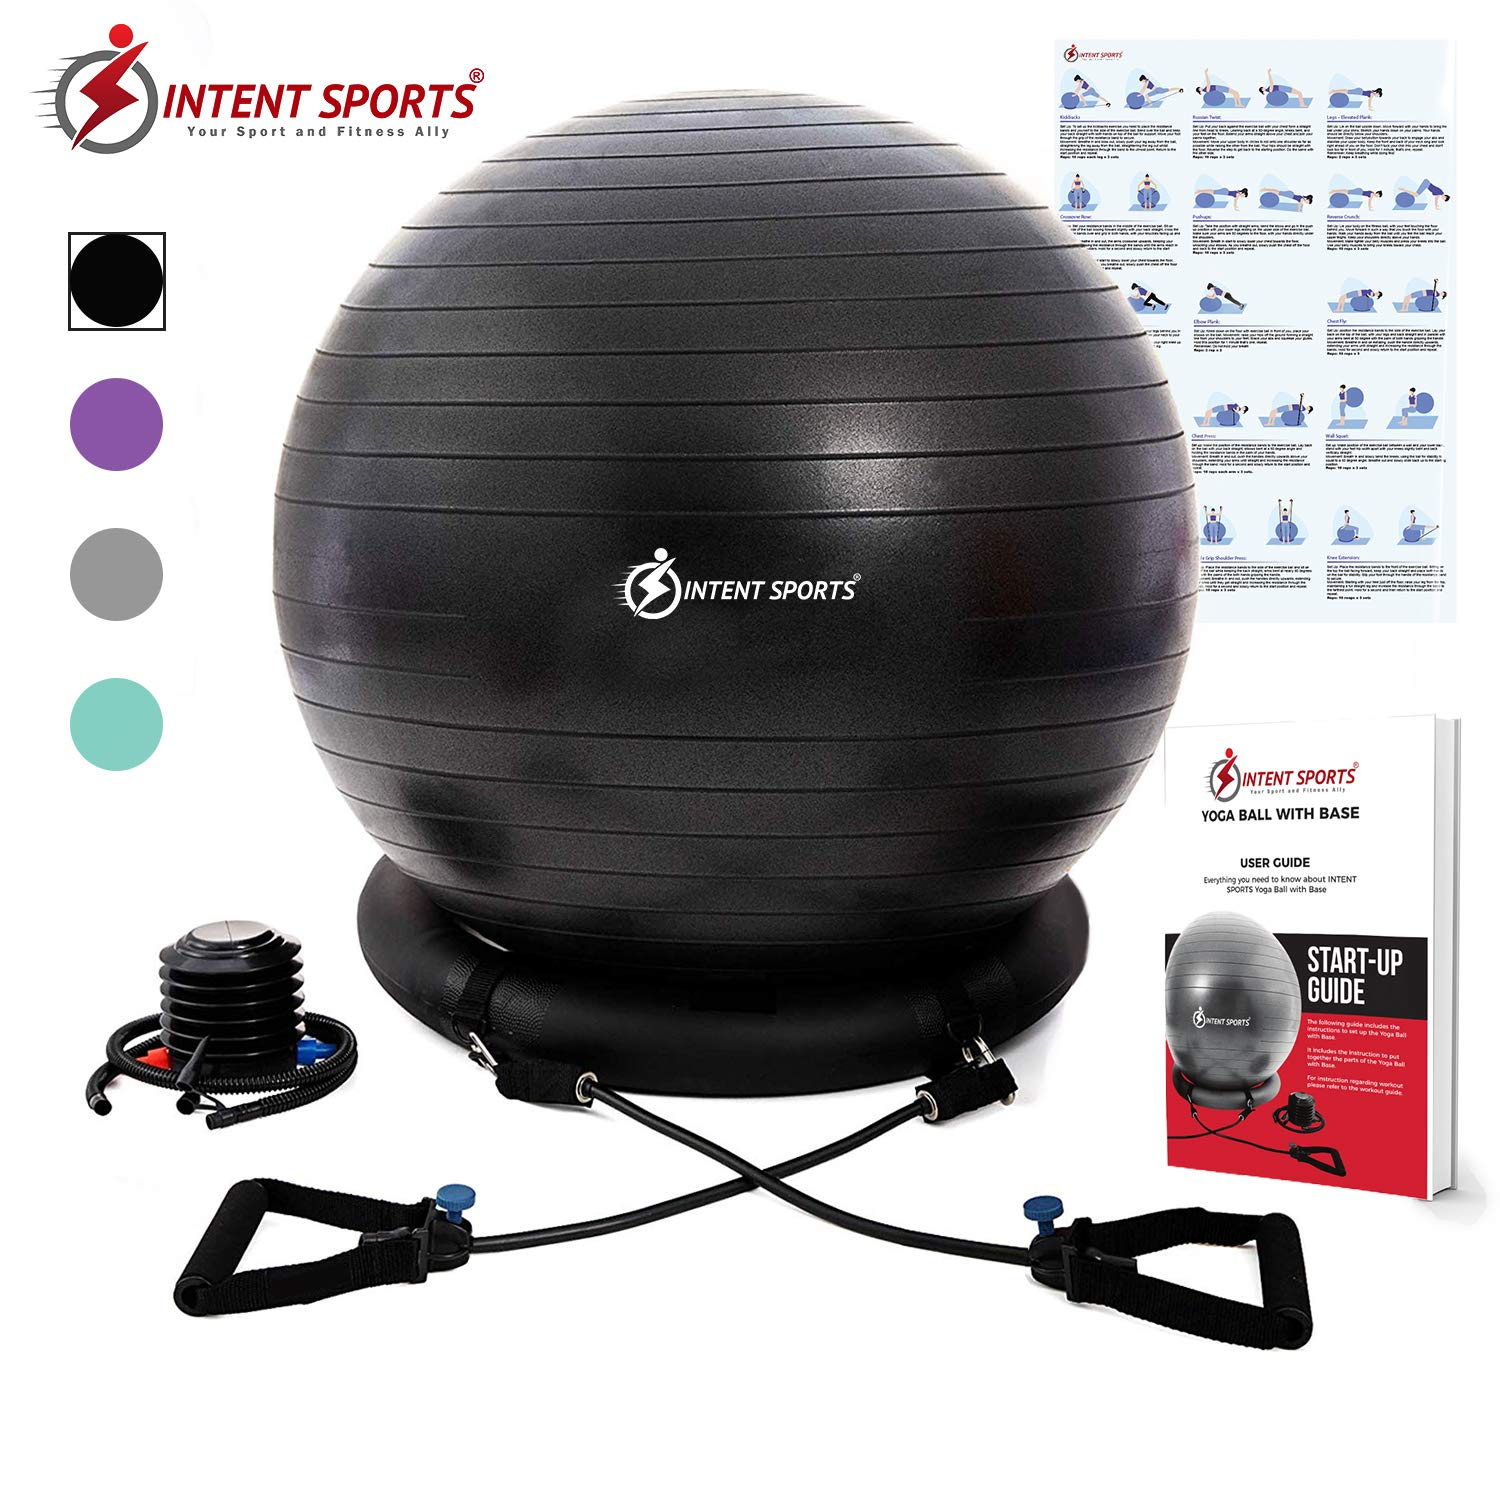 INTENT SPORTS Yoga Ball Chair Stability Ball with Inflatable Stability Base Resistance Bands, Fitness Ball for Home Gym, Office, Improves Back Pain, Core, Posture Balance 65 cm